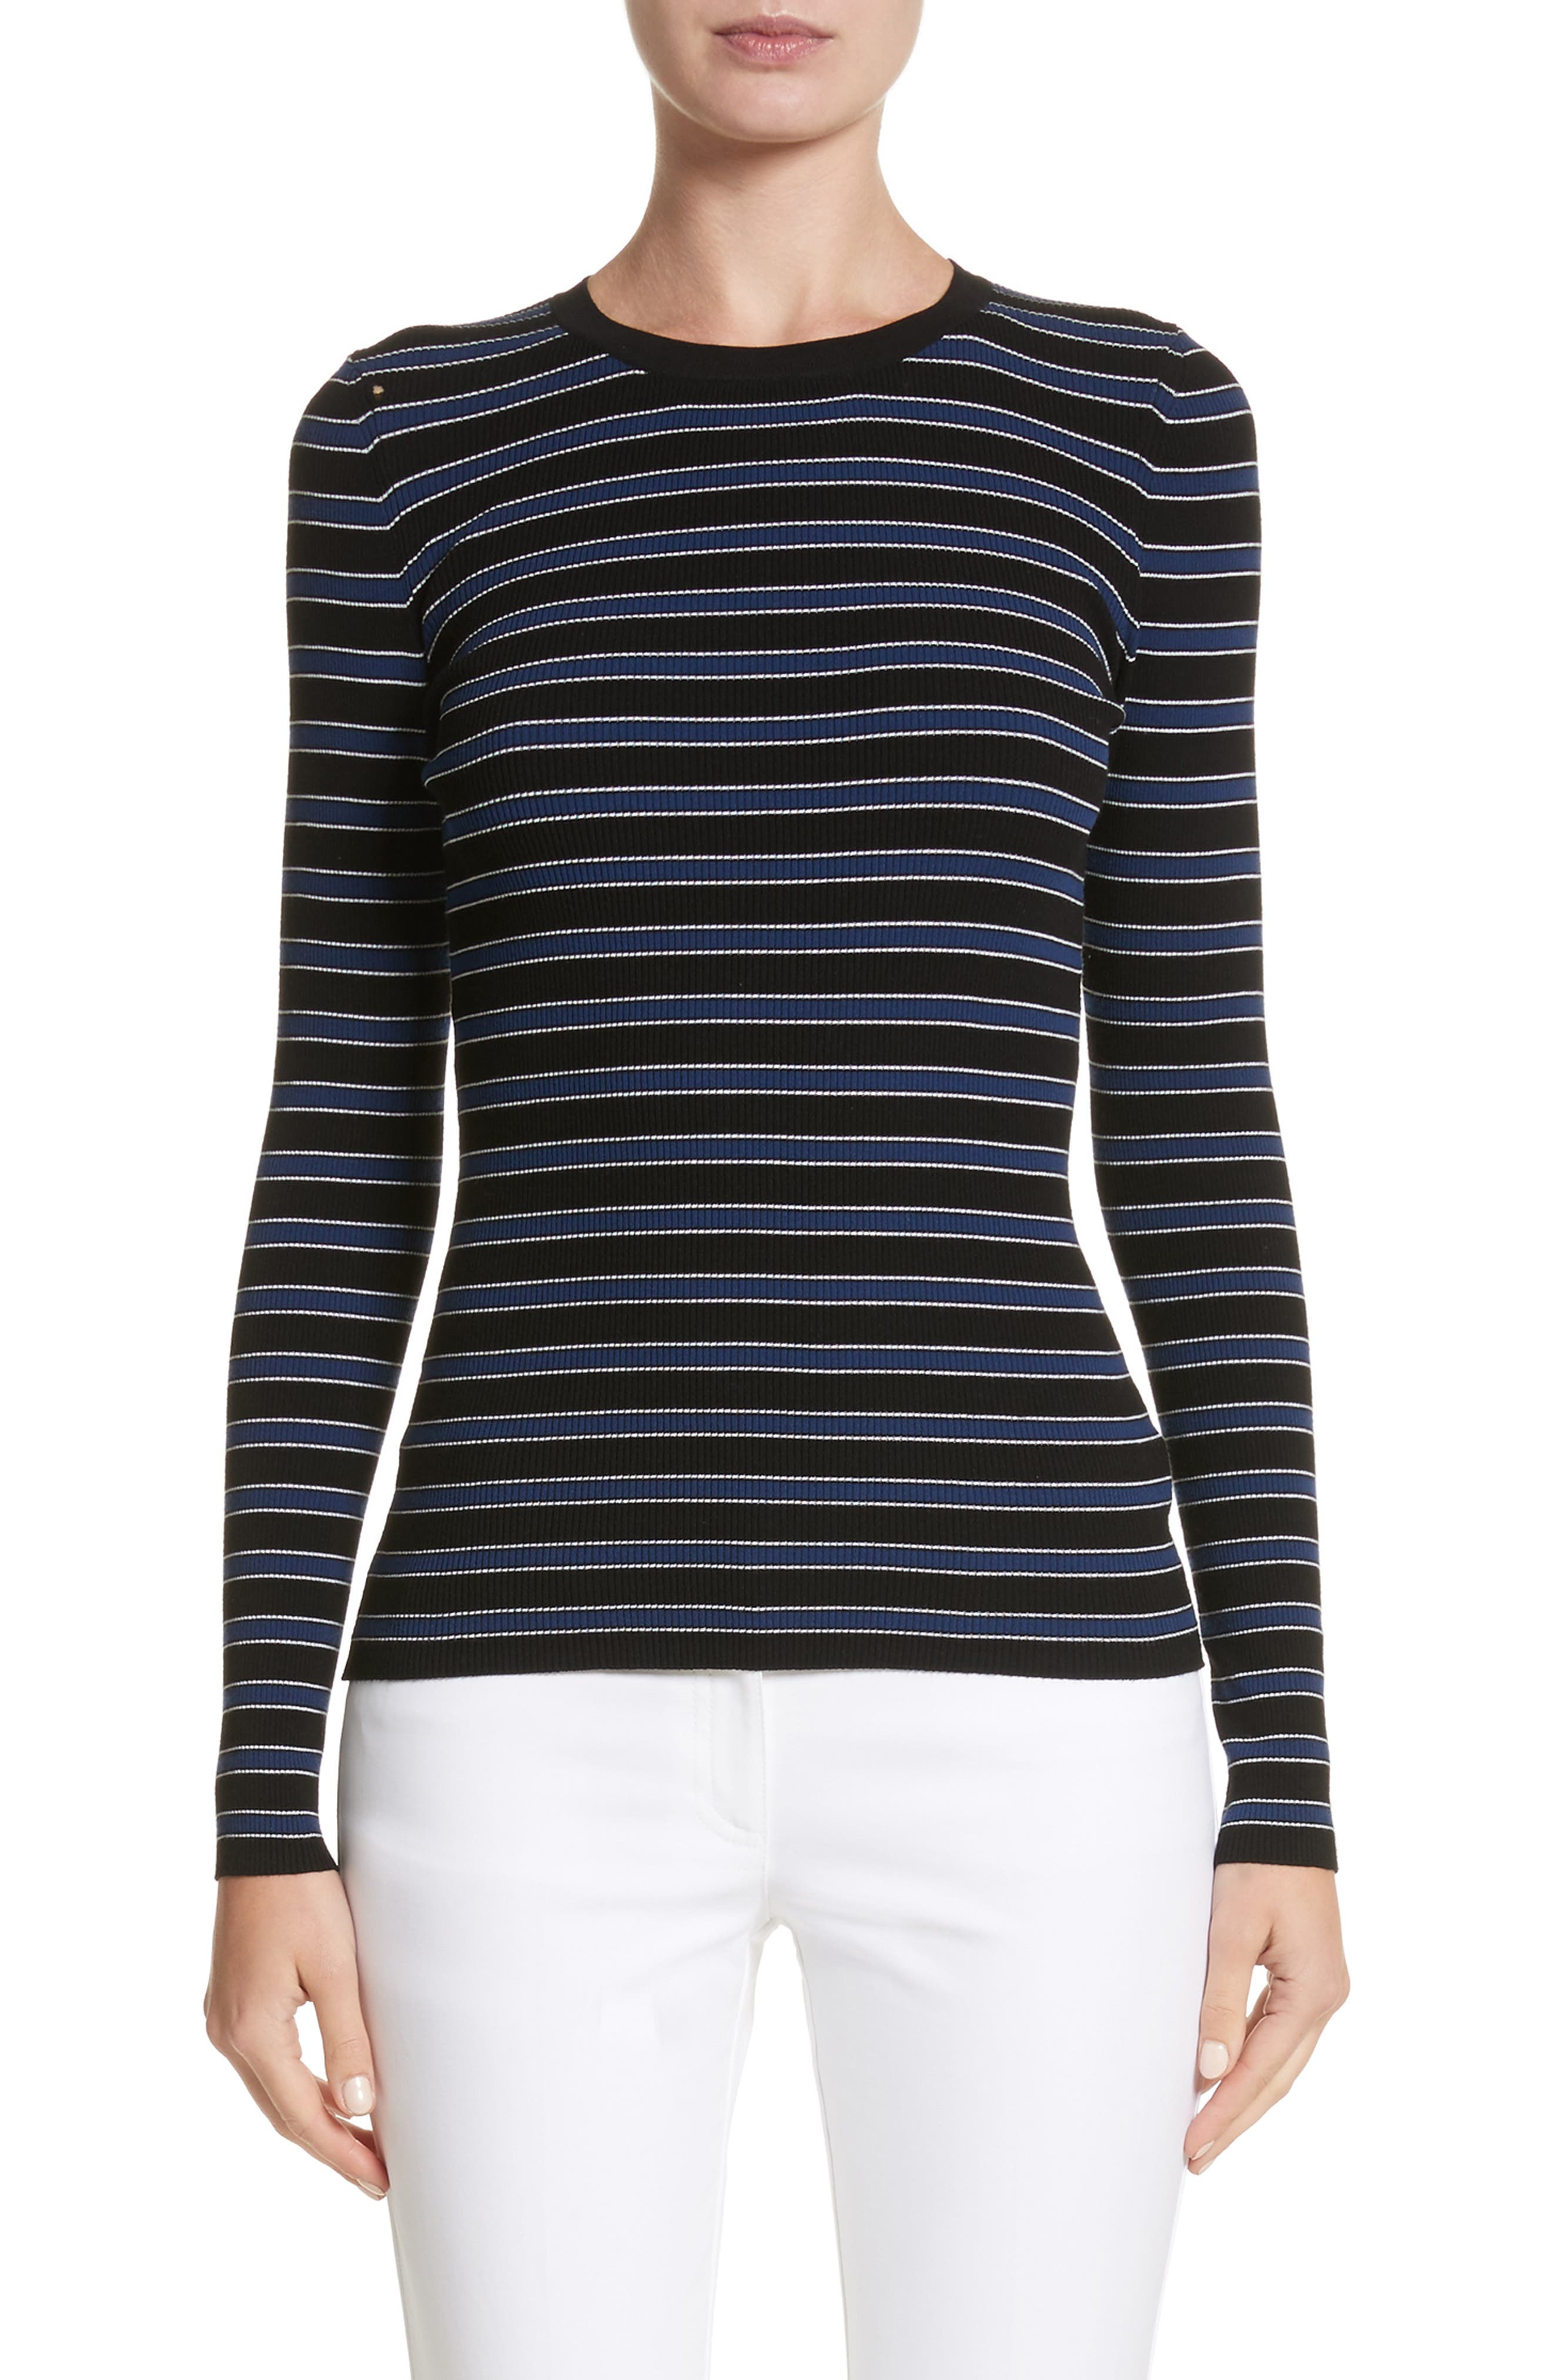 Michael Kors Stripe Top